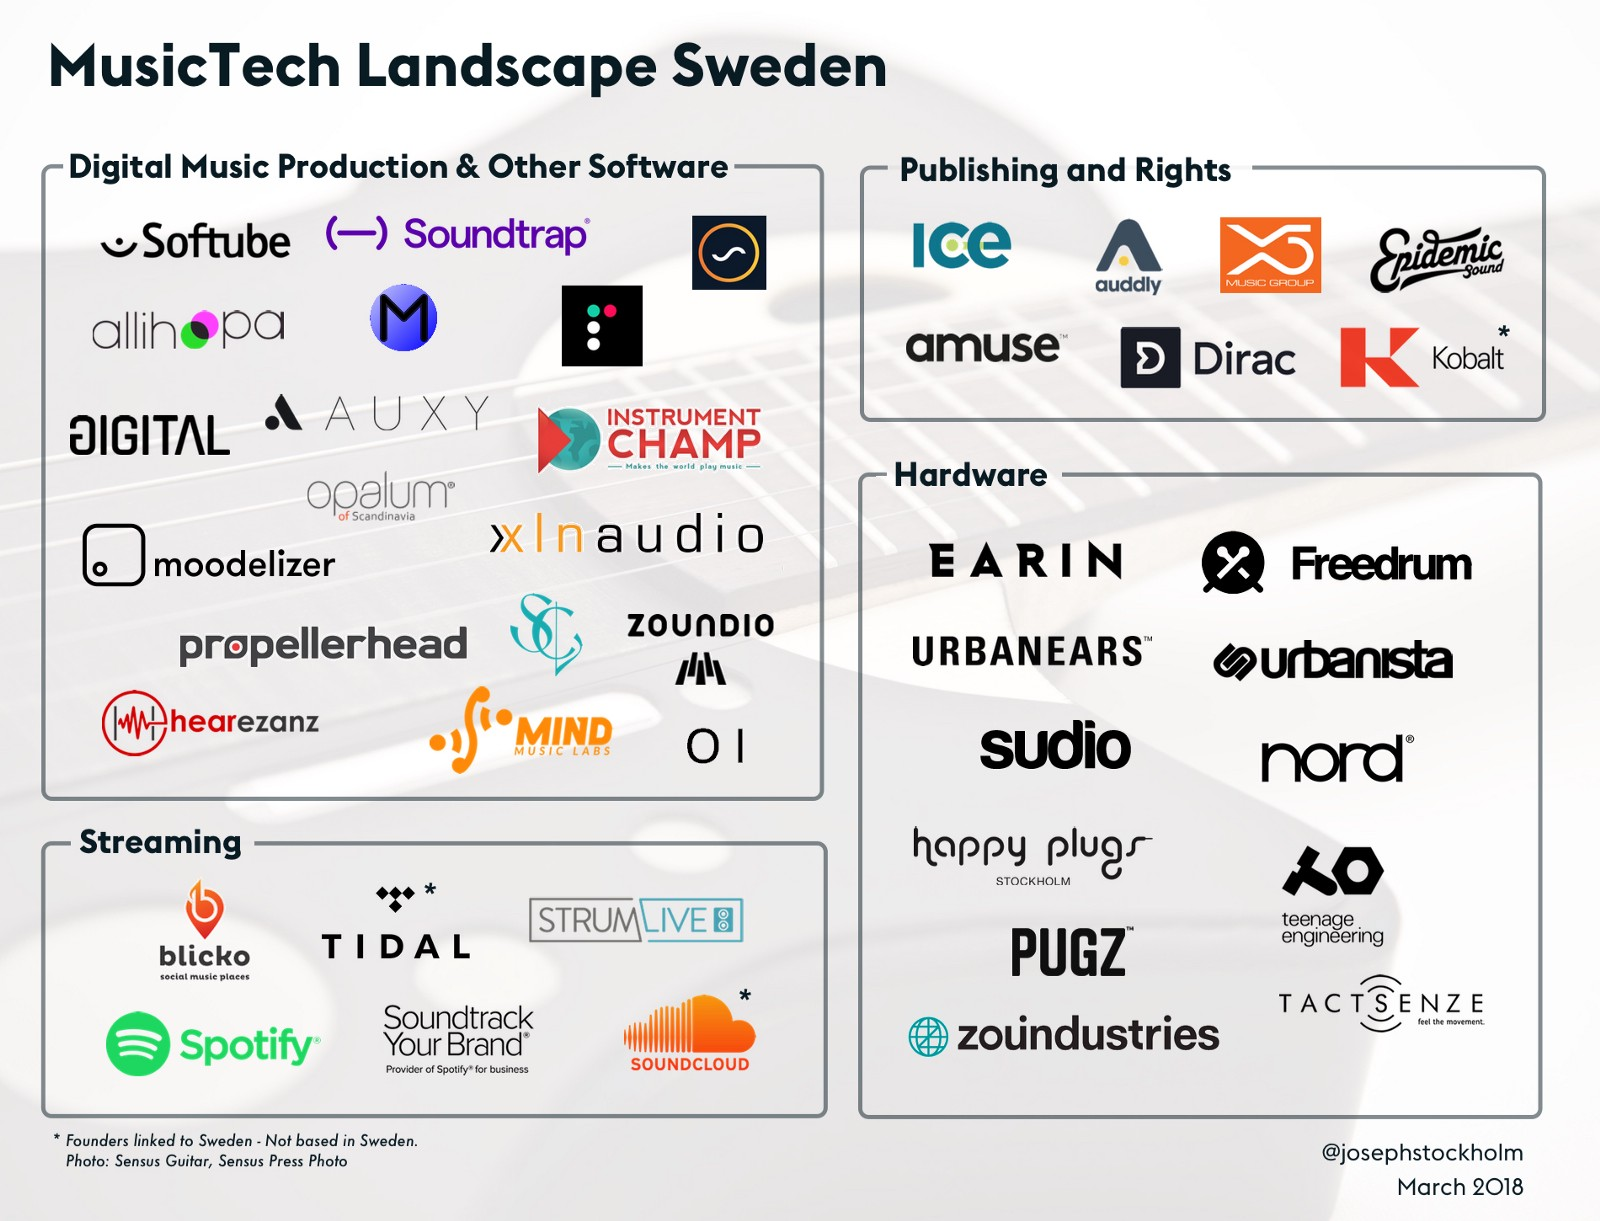 swedish companies musictech landscape medium